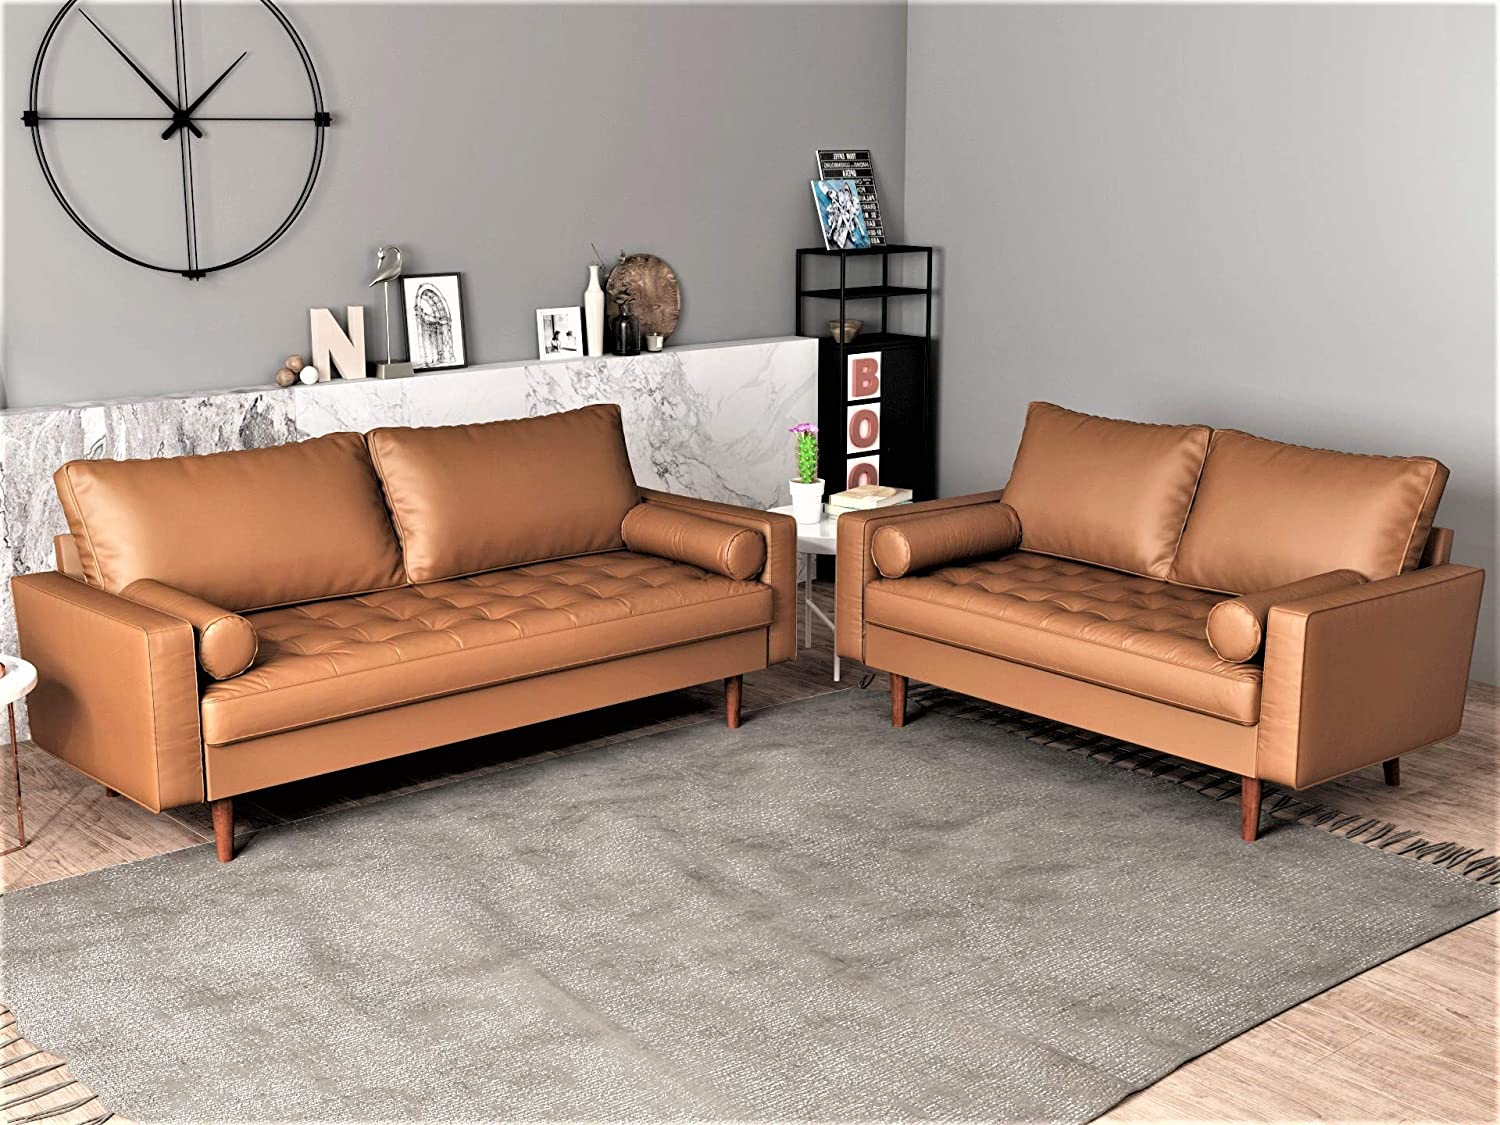 Container Furniture Direct Orion Mid Century Modern Faux Leather Upholstered Sofa Loveseat Set with Bolster Pillows, Brown